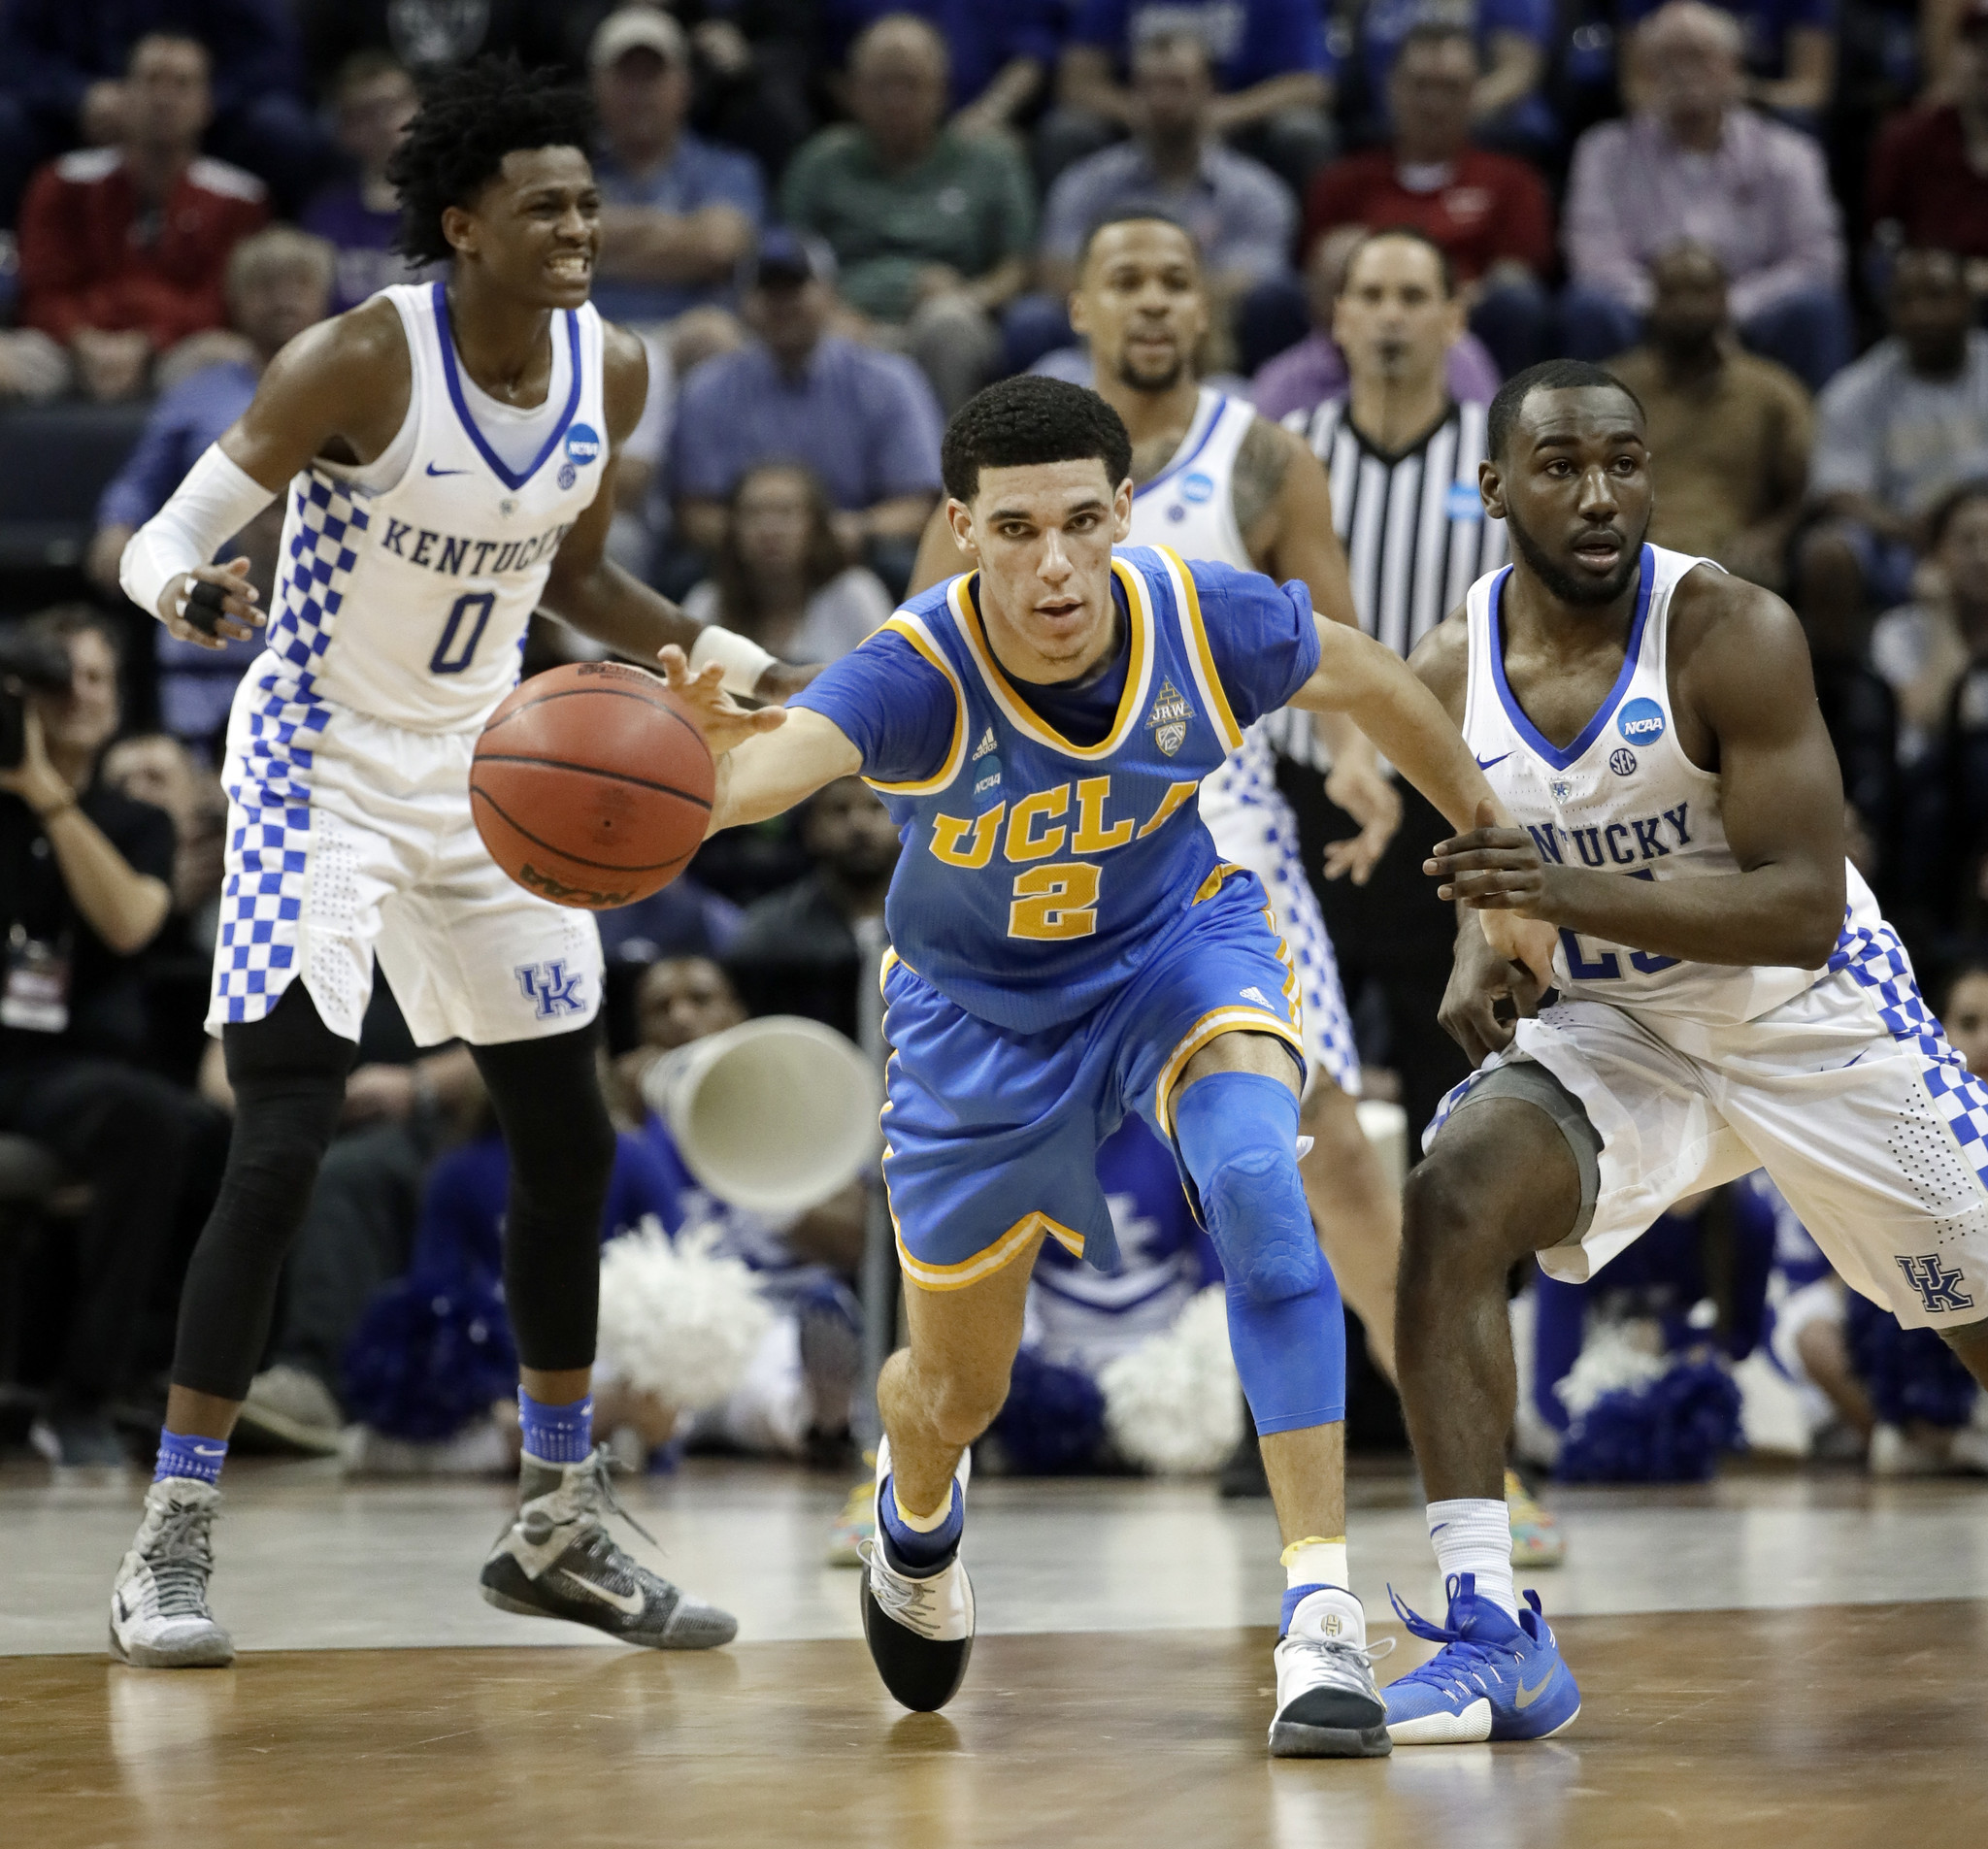 Adidas, Nike, Under Armour not interested in Lonzo Ball endorsement deal